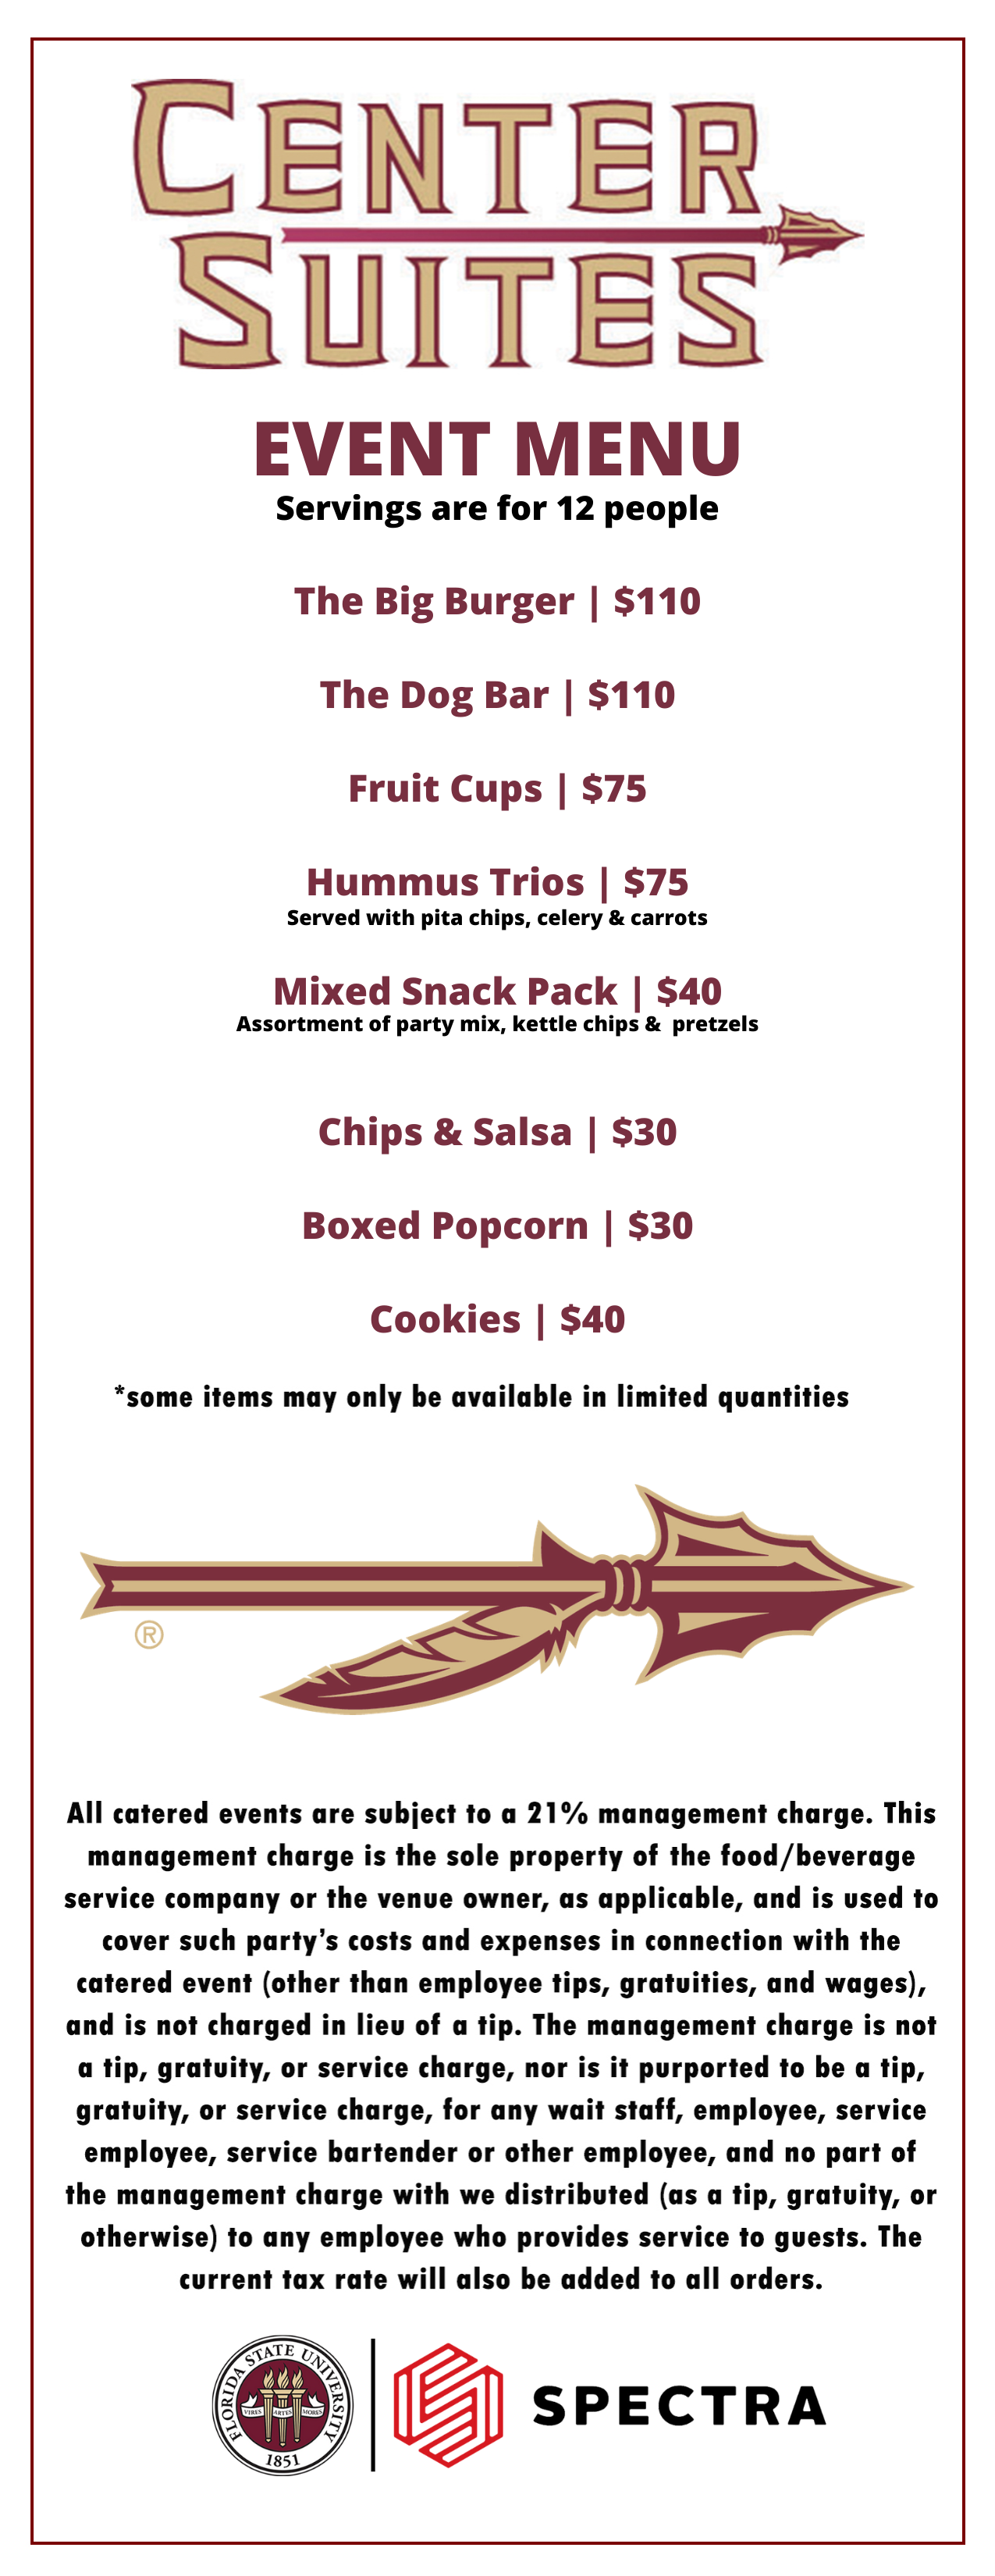 Center Suites Menu.png